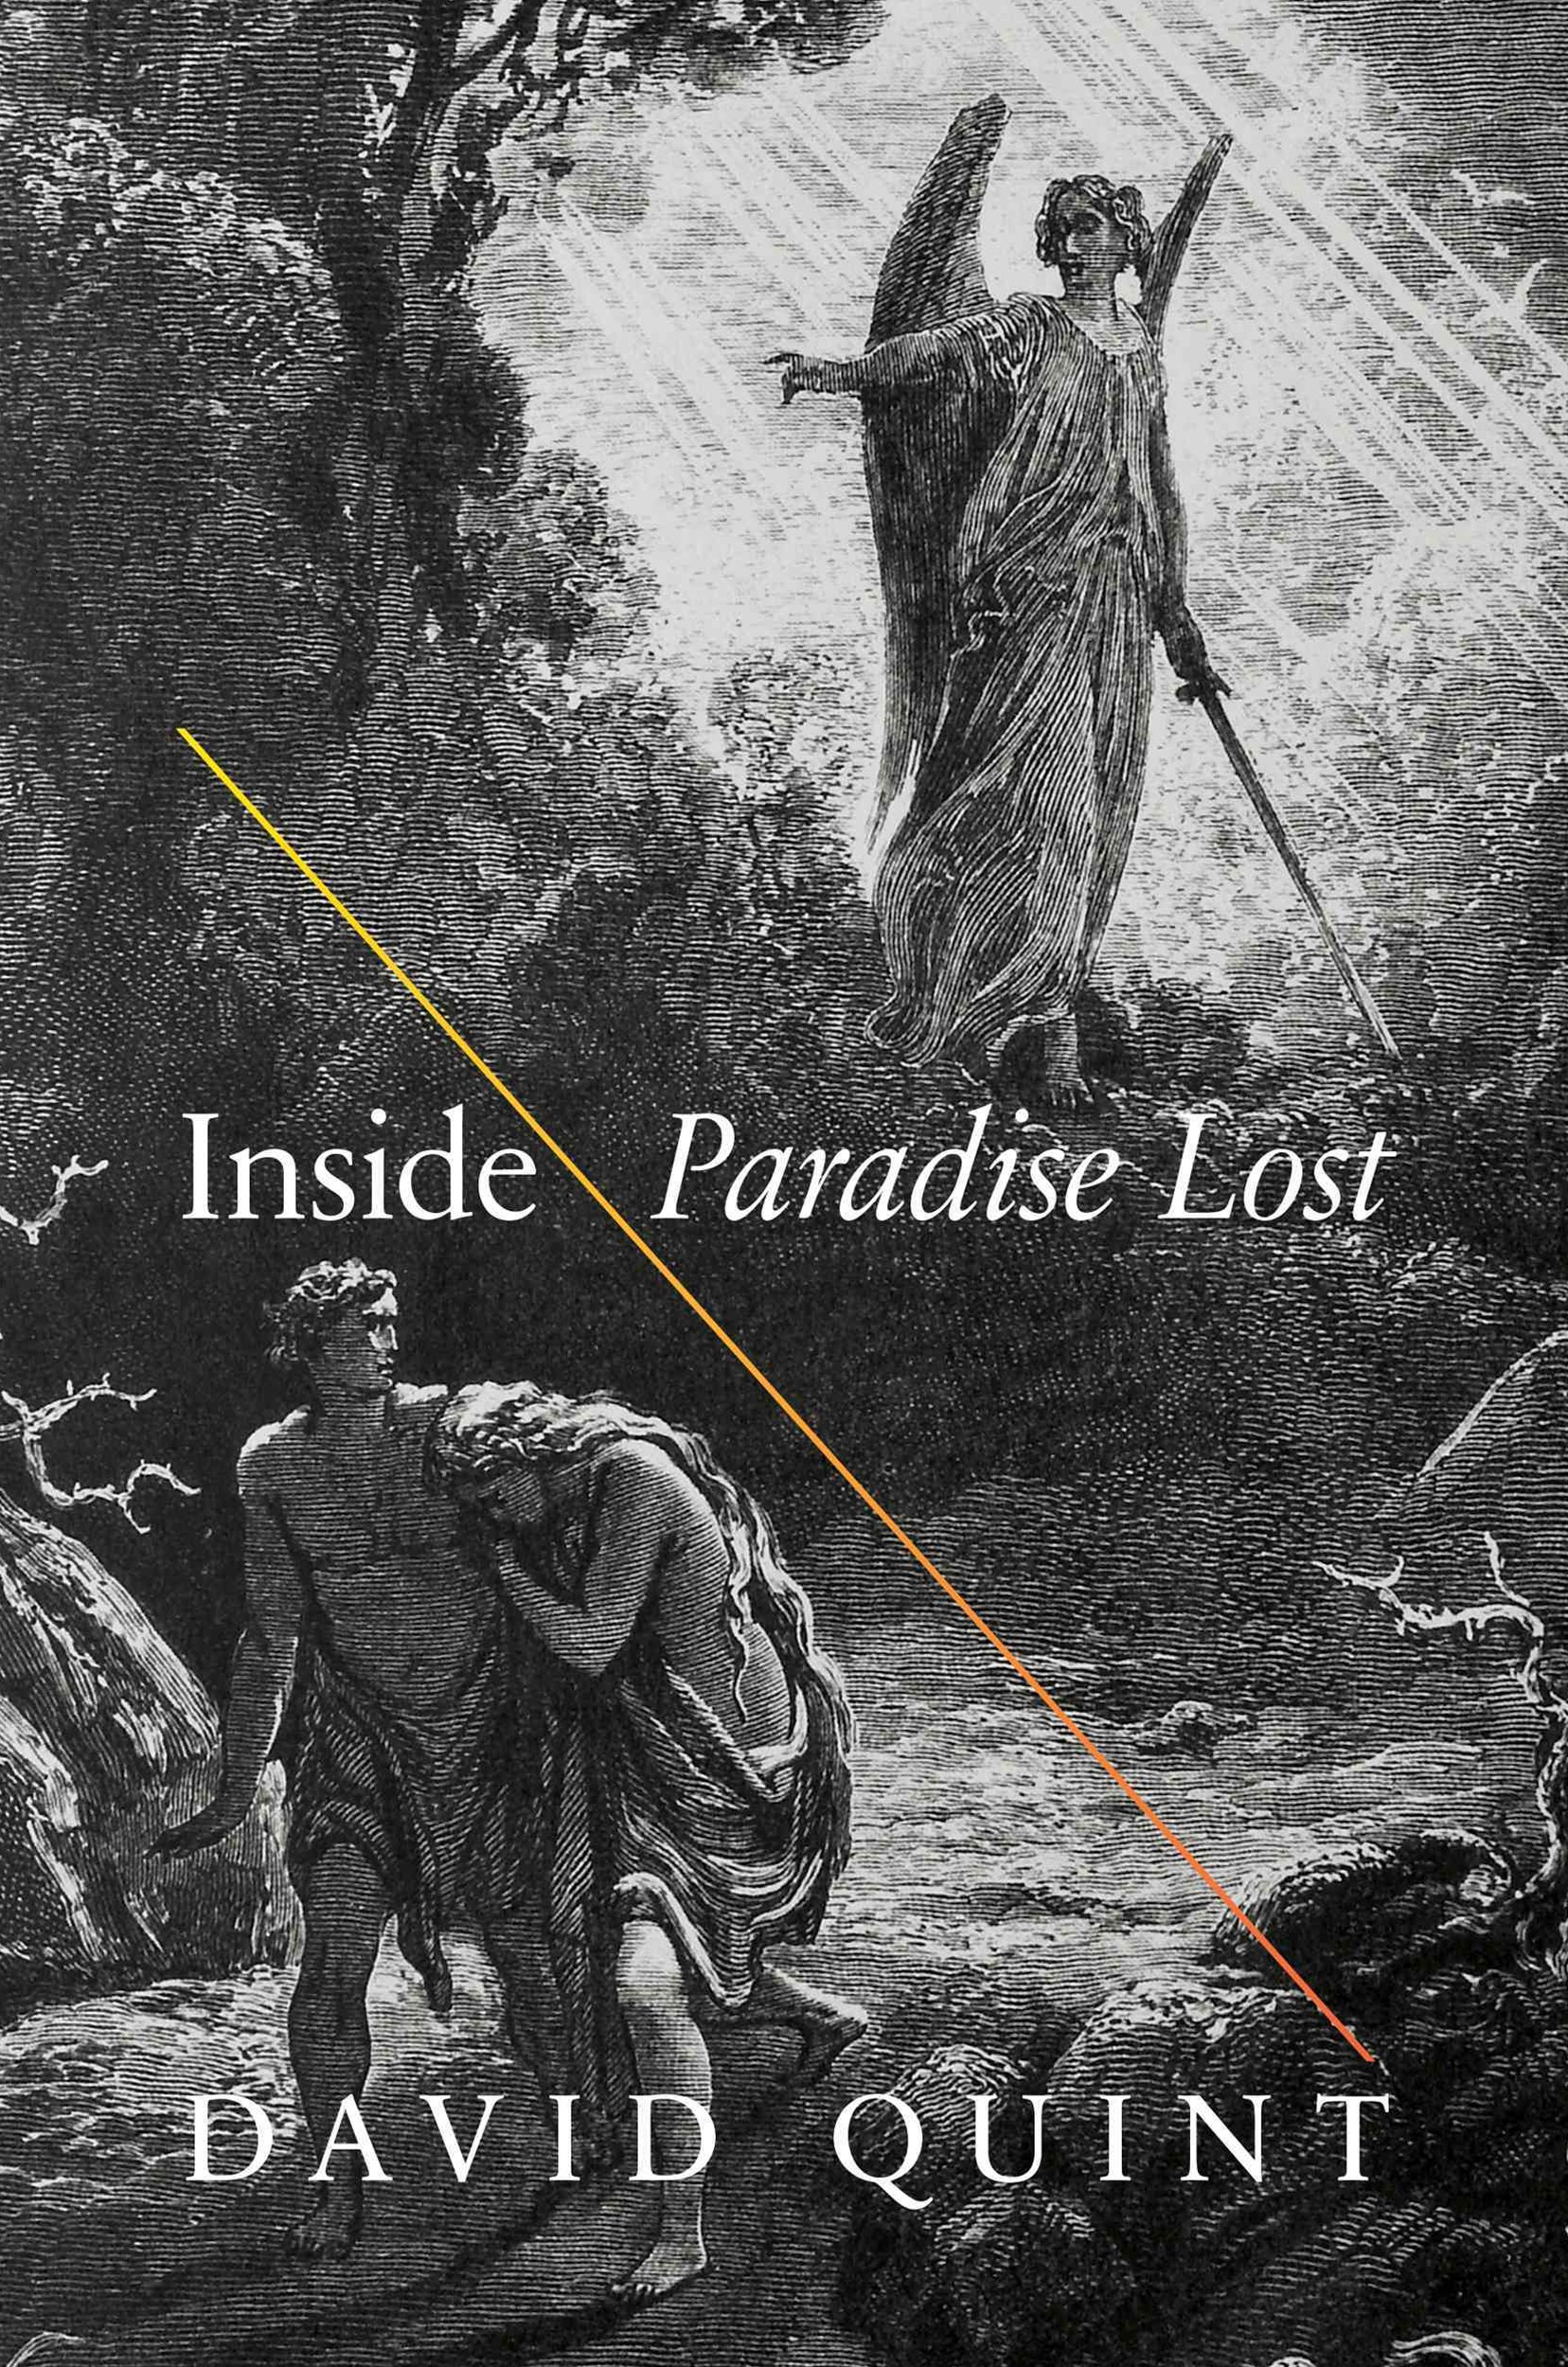 Inside &quote;Paradise Lost&quote;